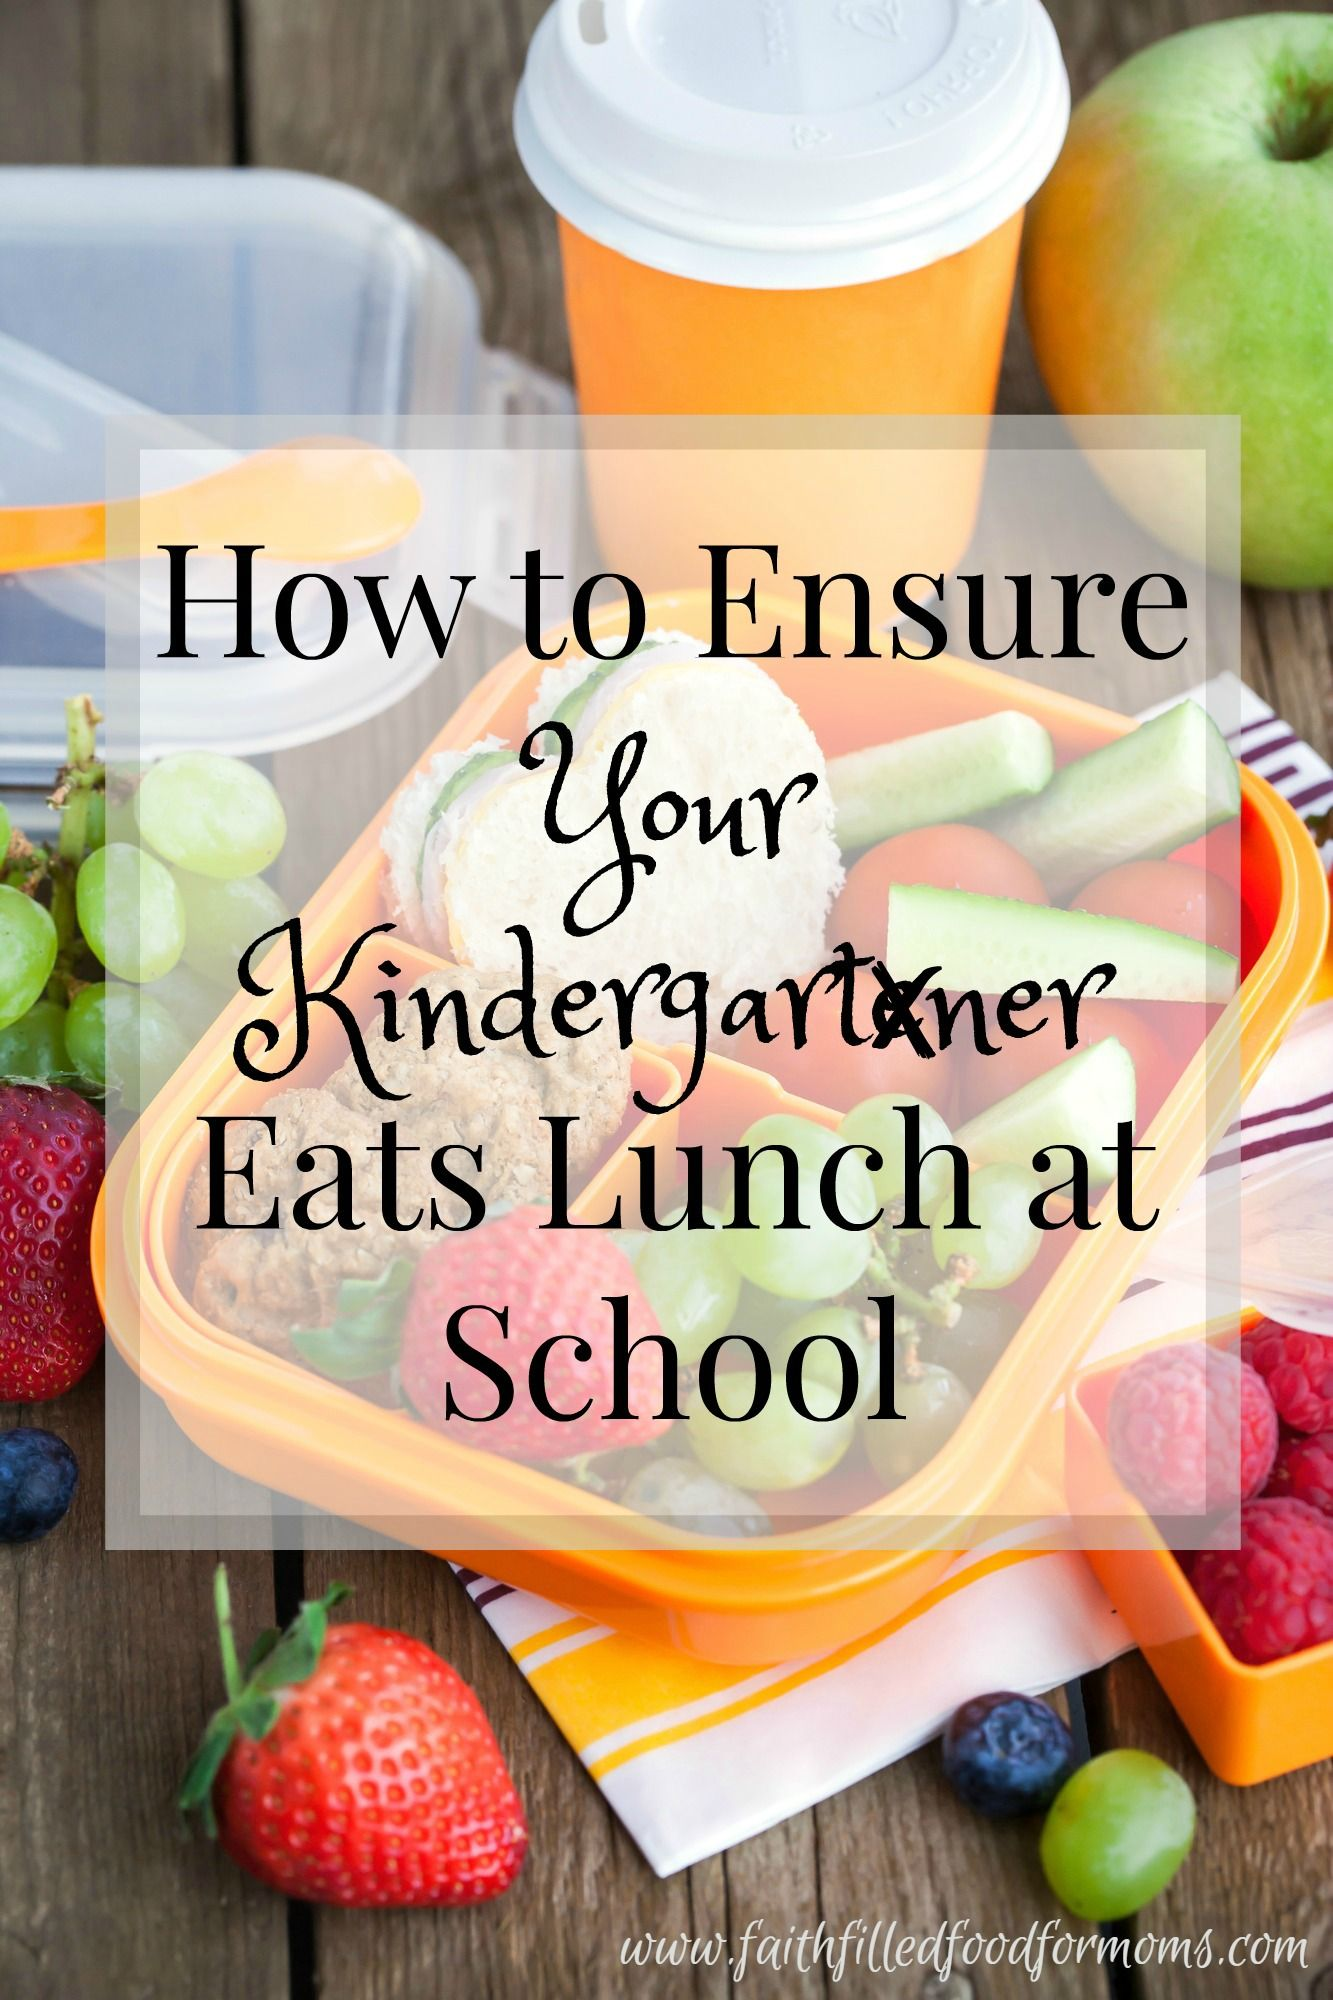 How To Make Sure Your Kids Eat Lunch At School